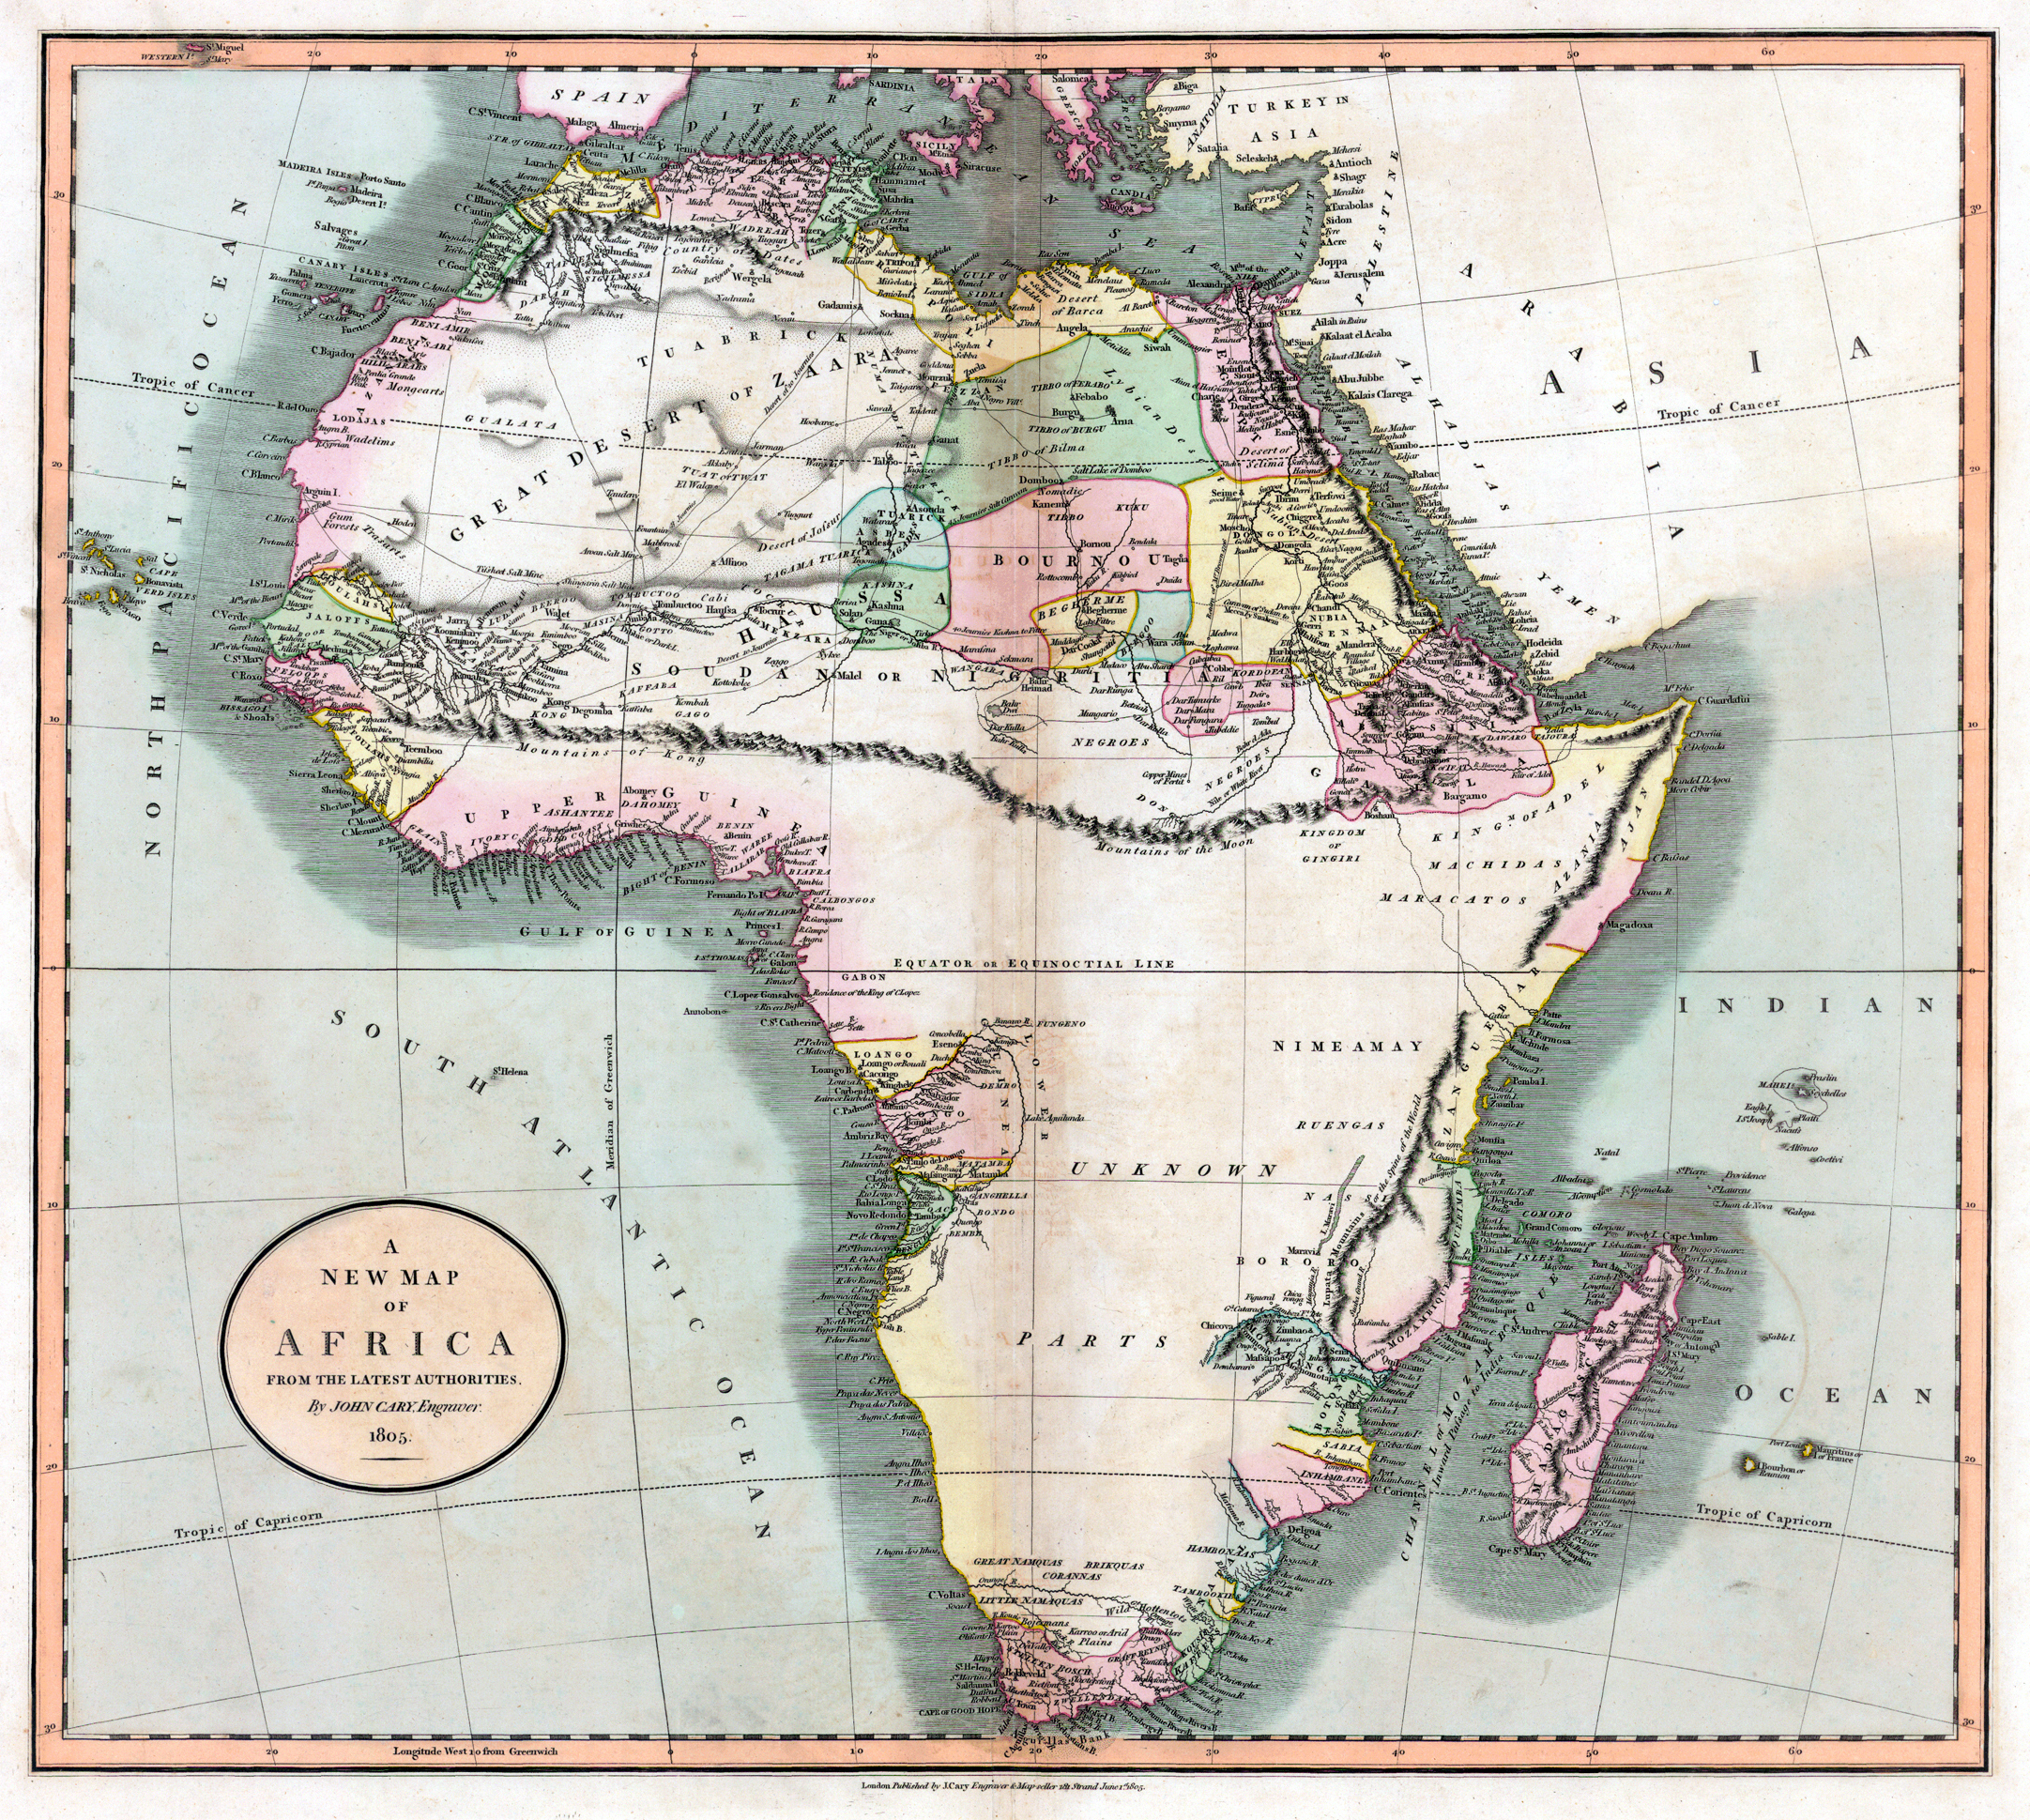 John Cary produced this oh-so-accurate map in 1805.